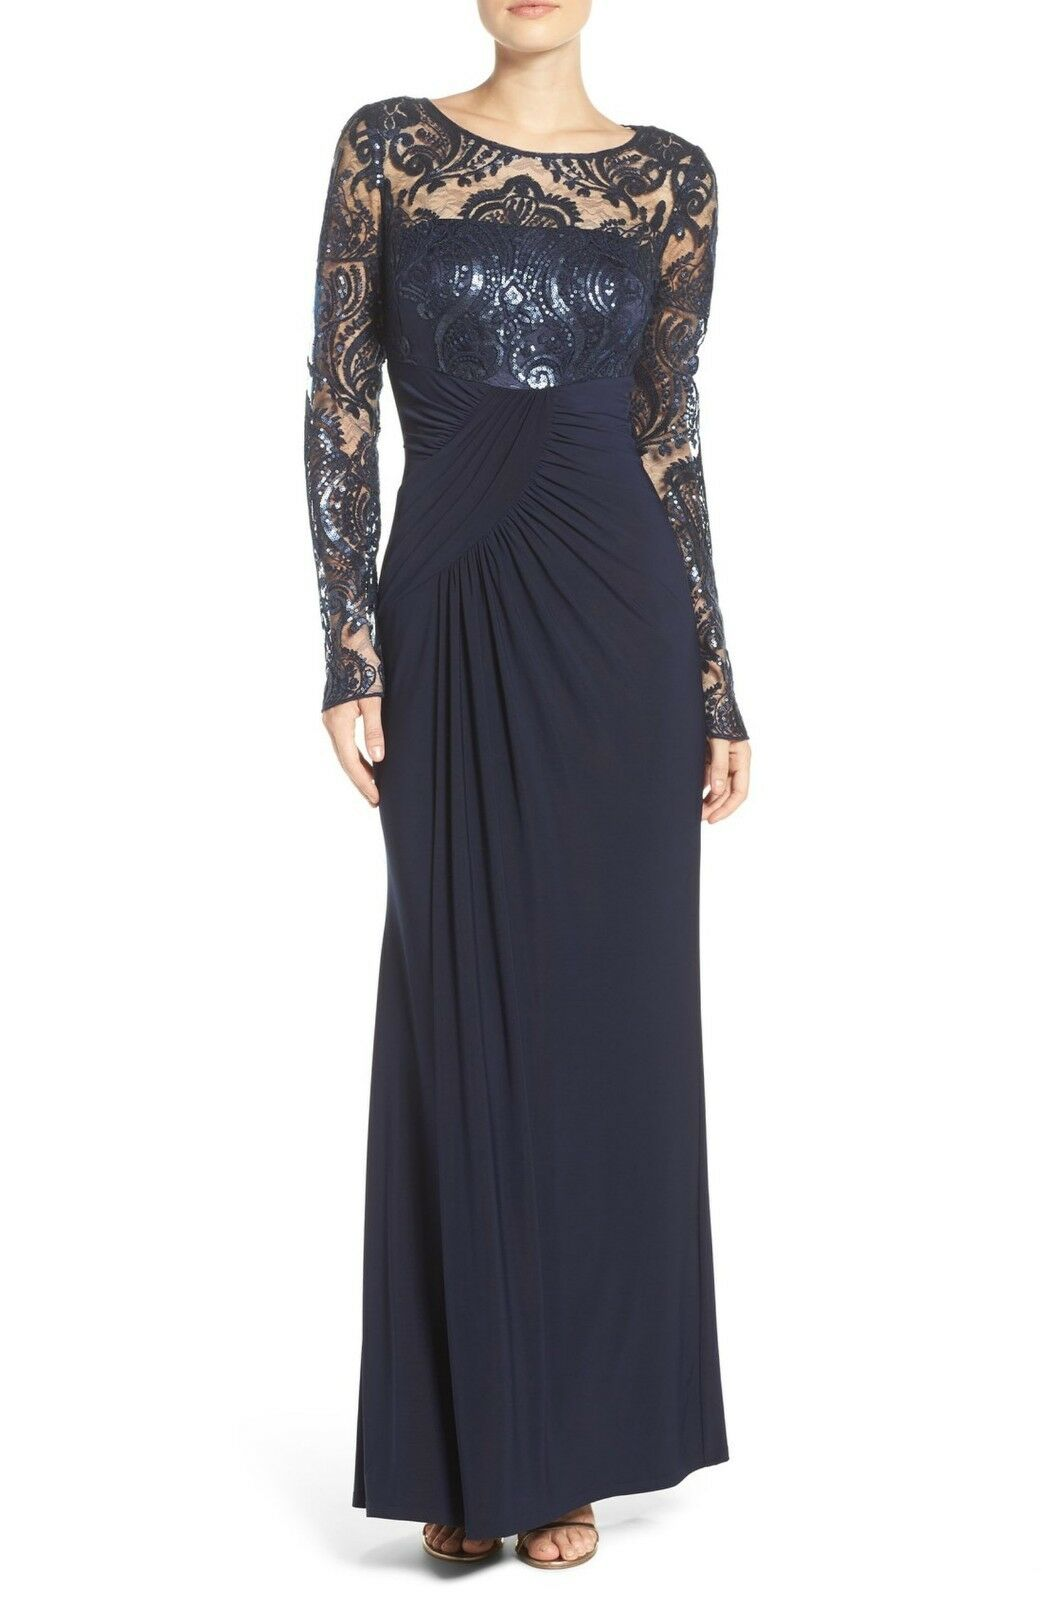 ELIZA J Draped Long Sleeve Sequin Gown, Navy, size 4, 4, 4, MSRP  208.  DL1029 65d78c